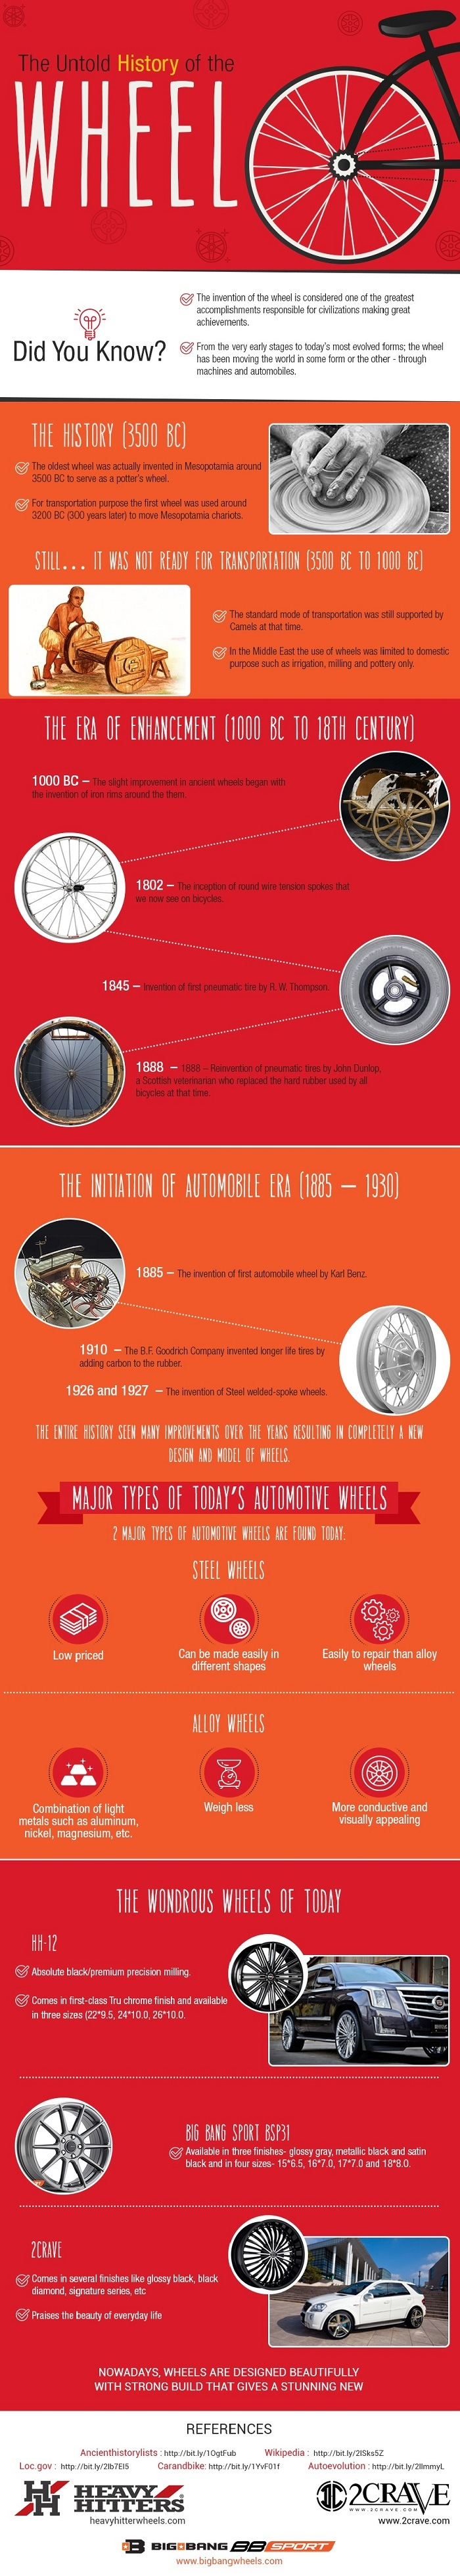 infographic about wheel history